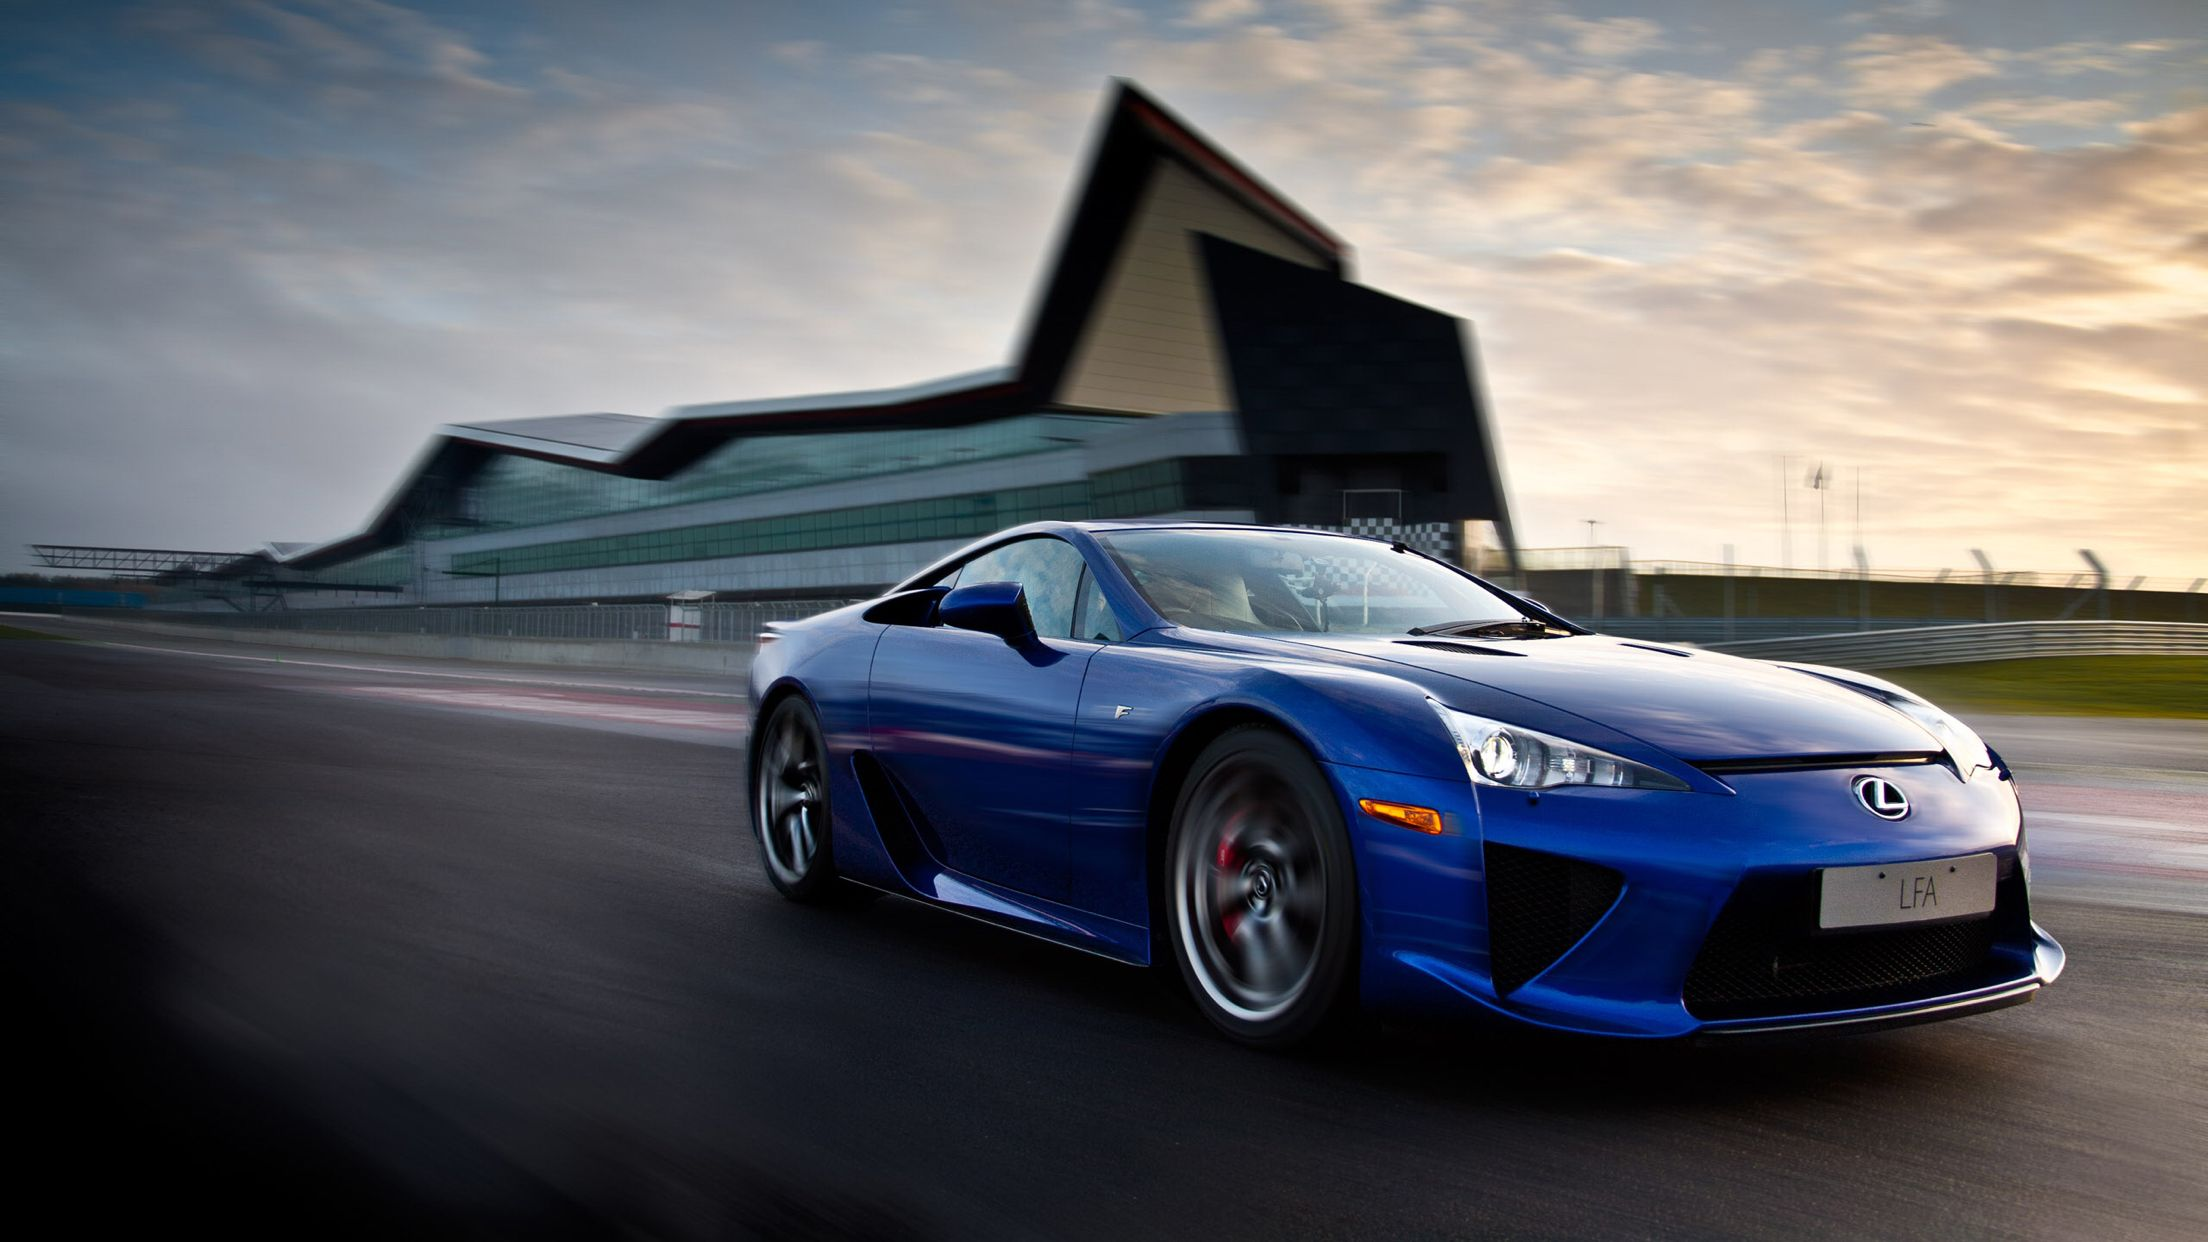 A Great Piece Of Engineering By Toyota The Lexus Lfa Lexus Lfa